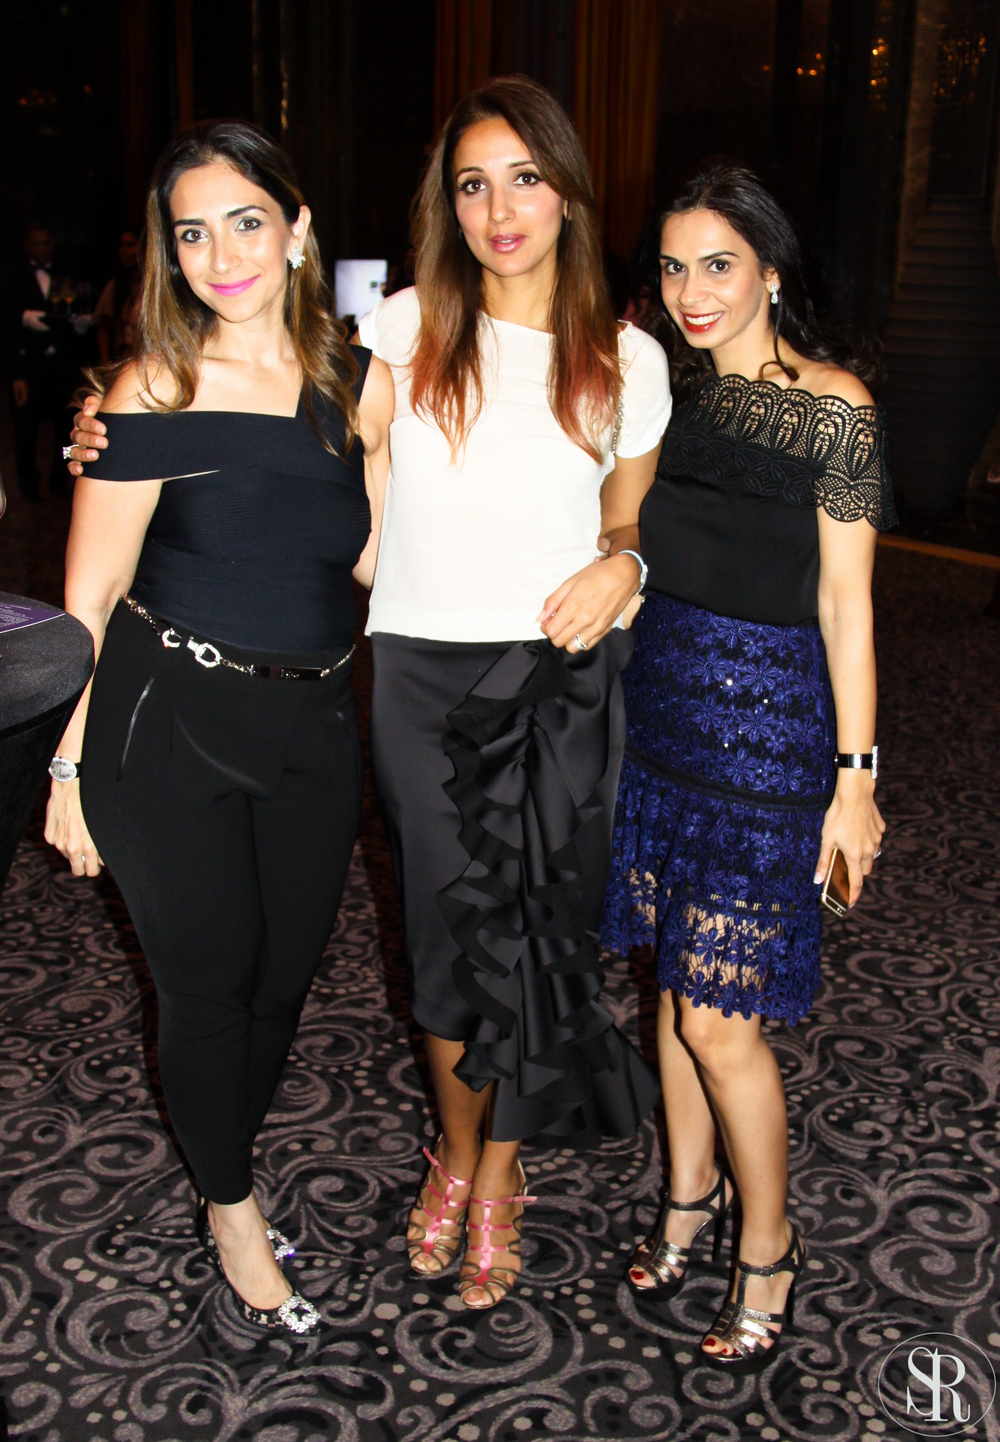 VIP launch of MANOLO BLAHNIK collection Fashion Afternoon Tea by Raffles Dubai-4244.jpg